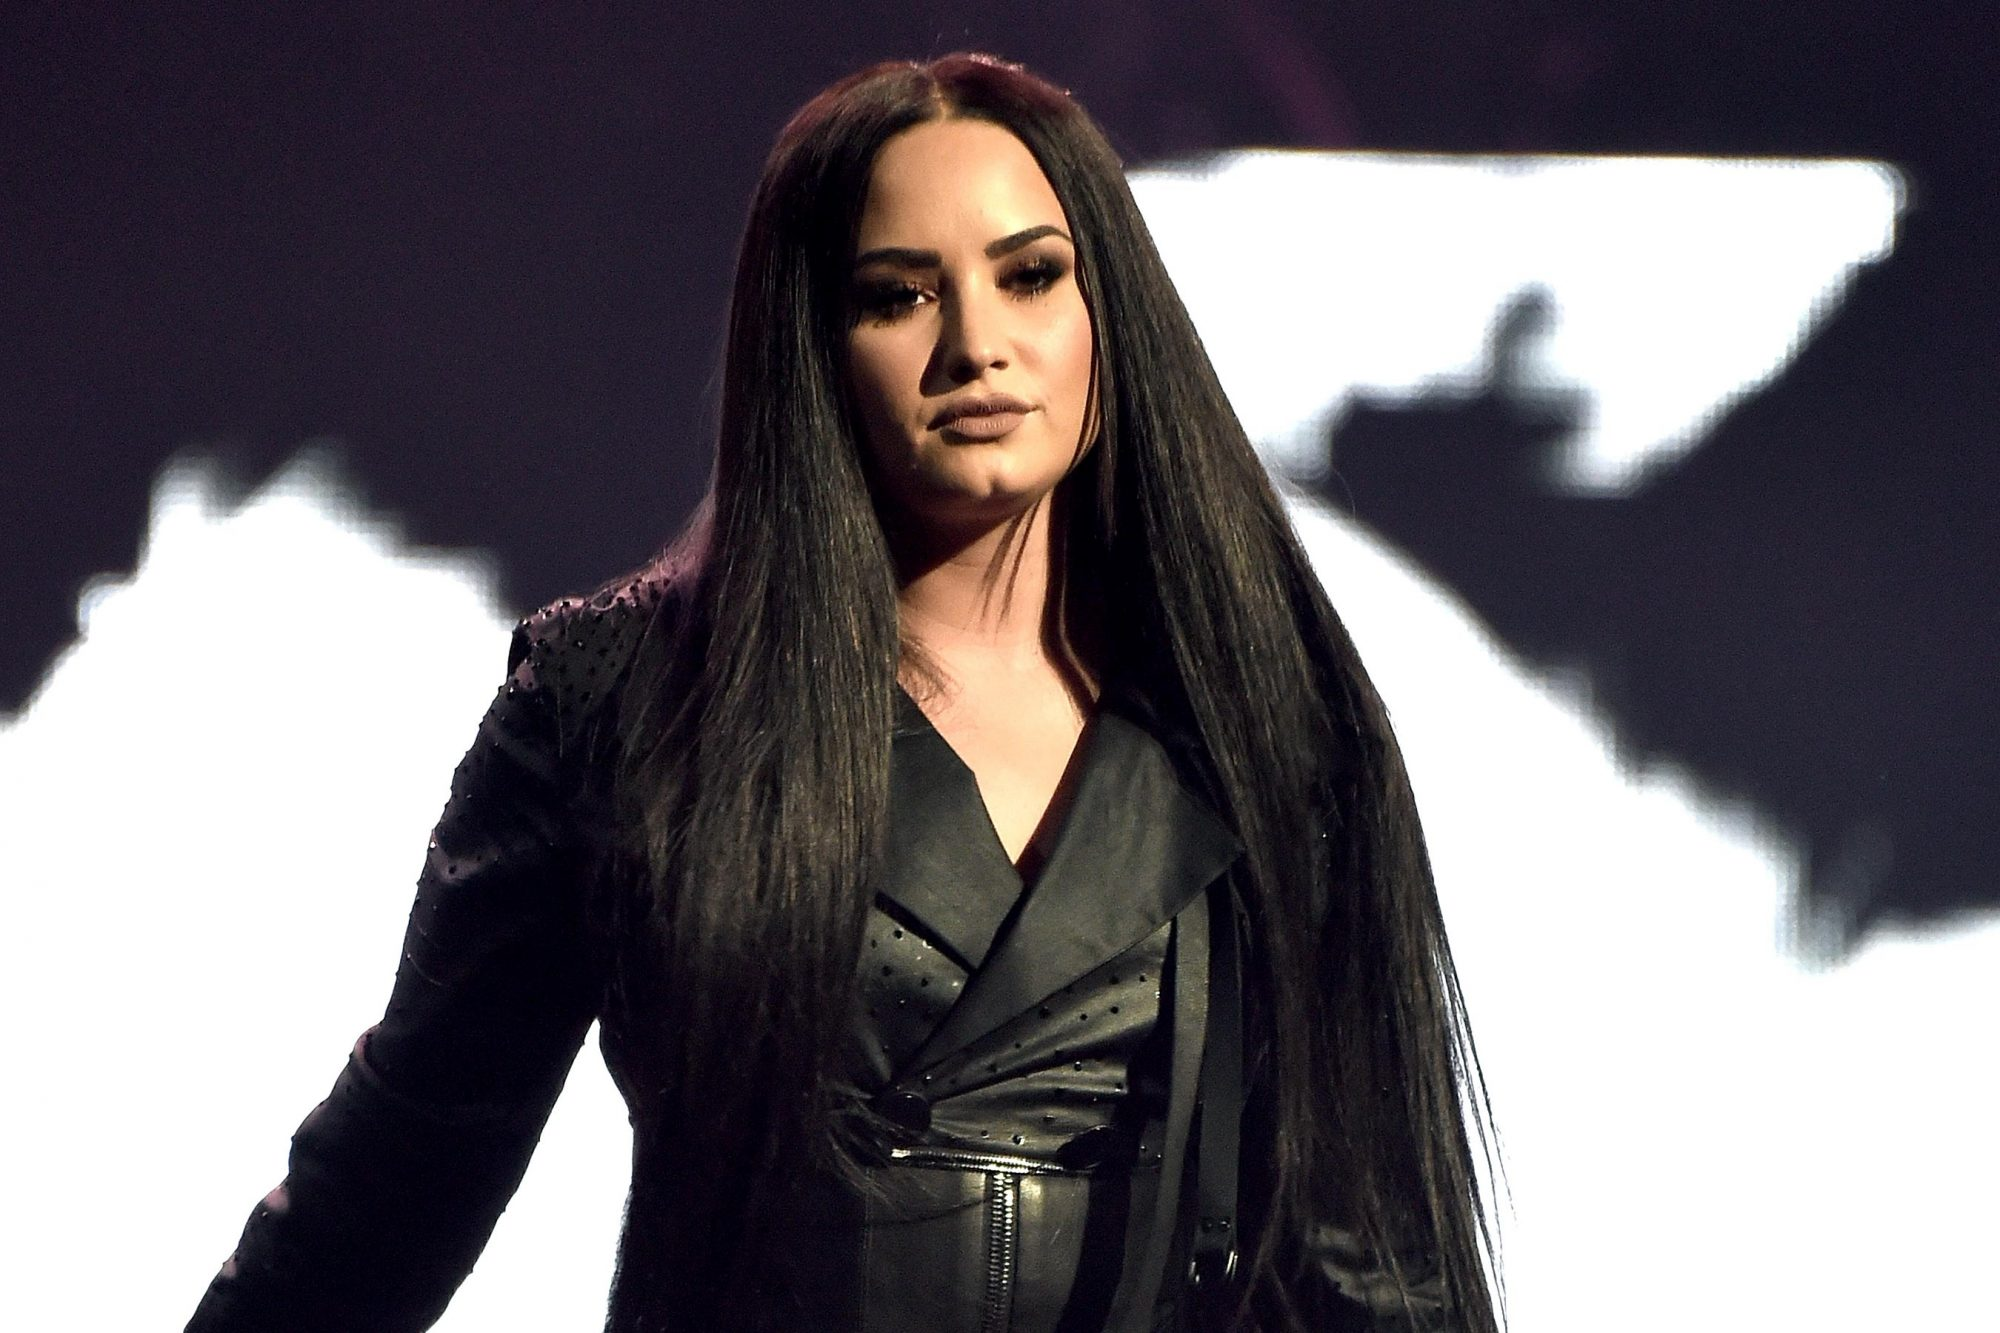 Demi Lovato in concert on her 'Tell Me You Love Me' World Tour, SAP Center, San Jose, USA - 28 Feb 2018